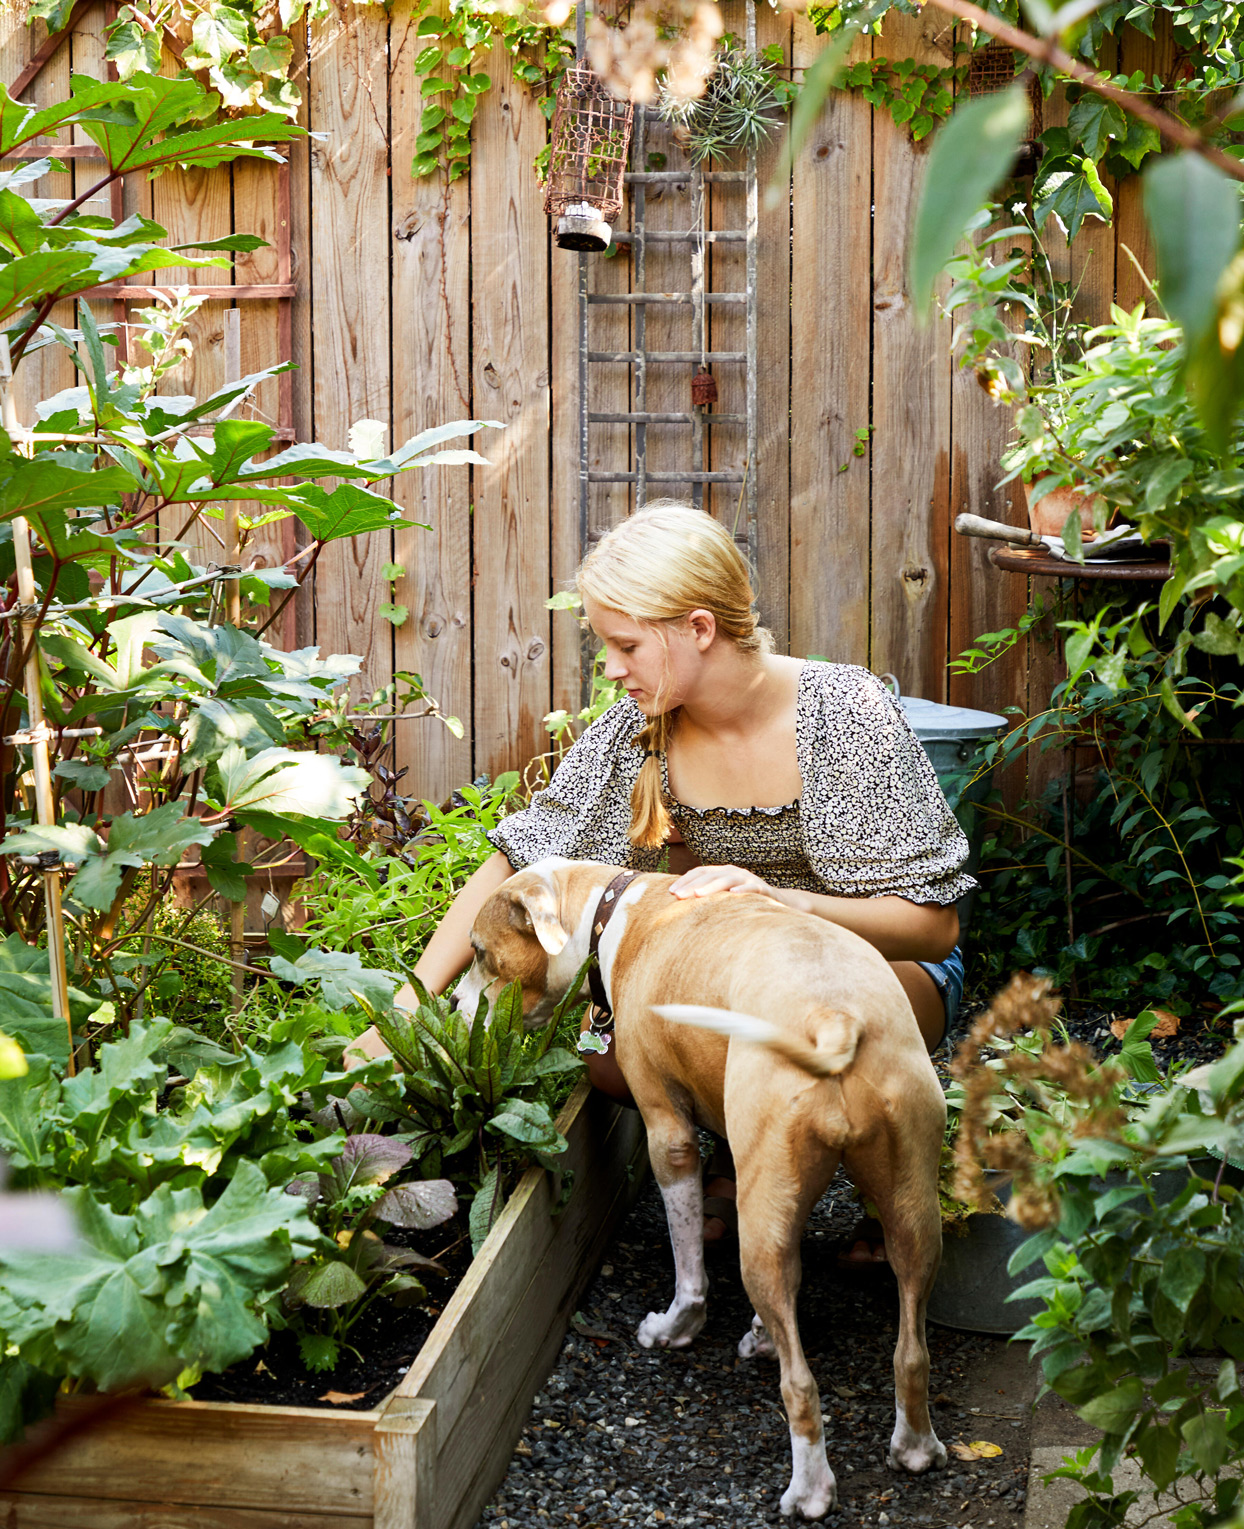 woman working in backyard garden with dog